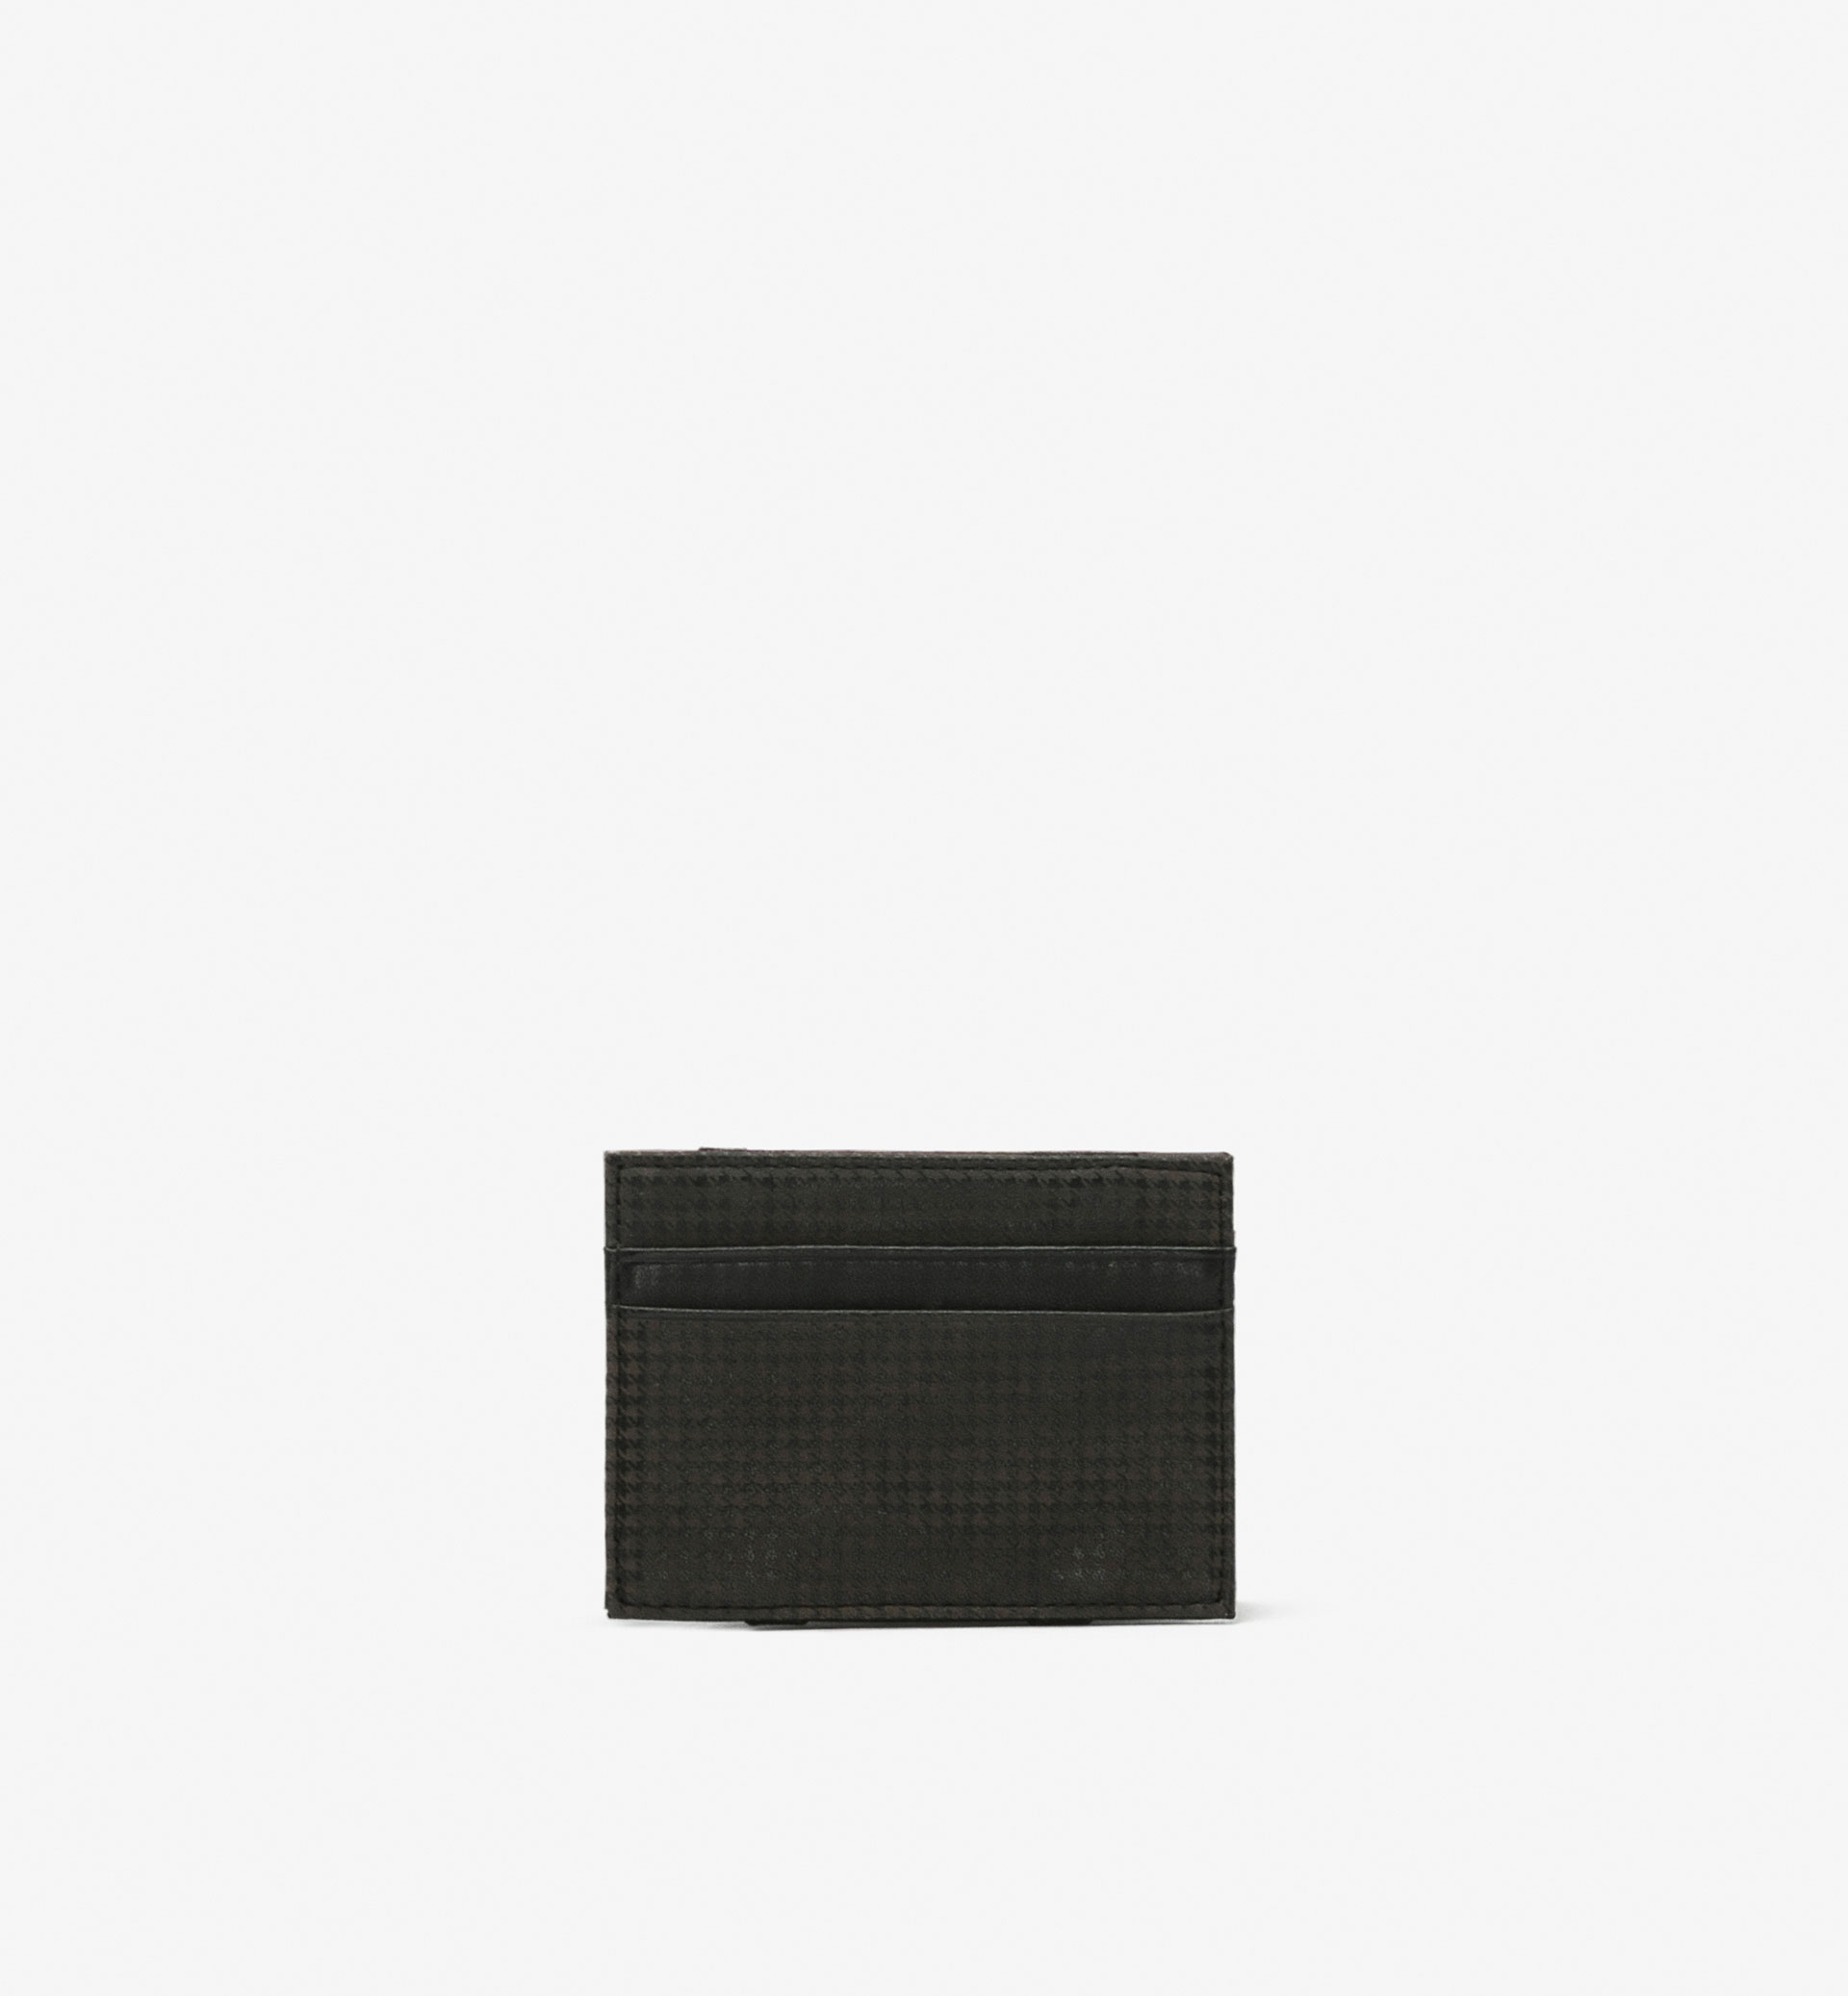 MAGIC WALLET HOUNDSTOOTH CARD HOLDER